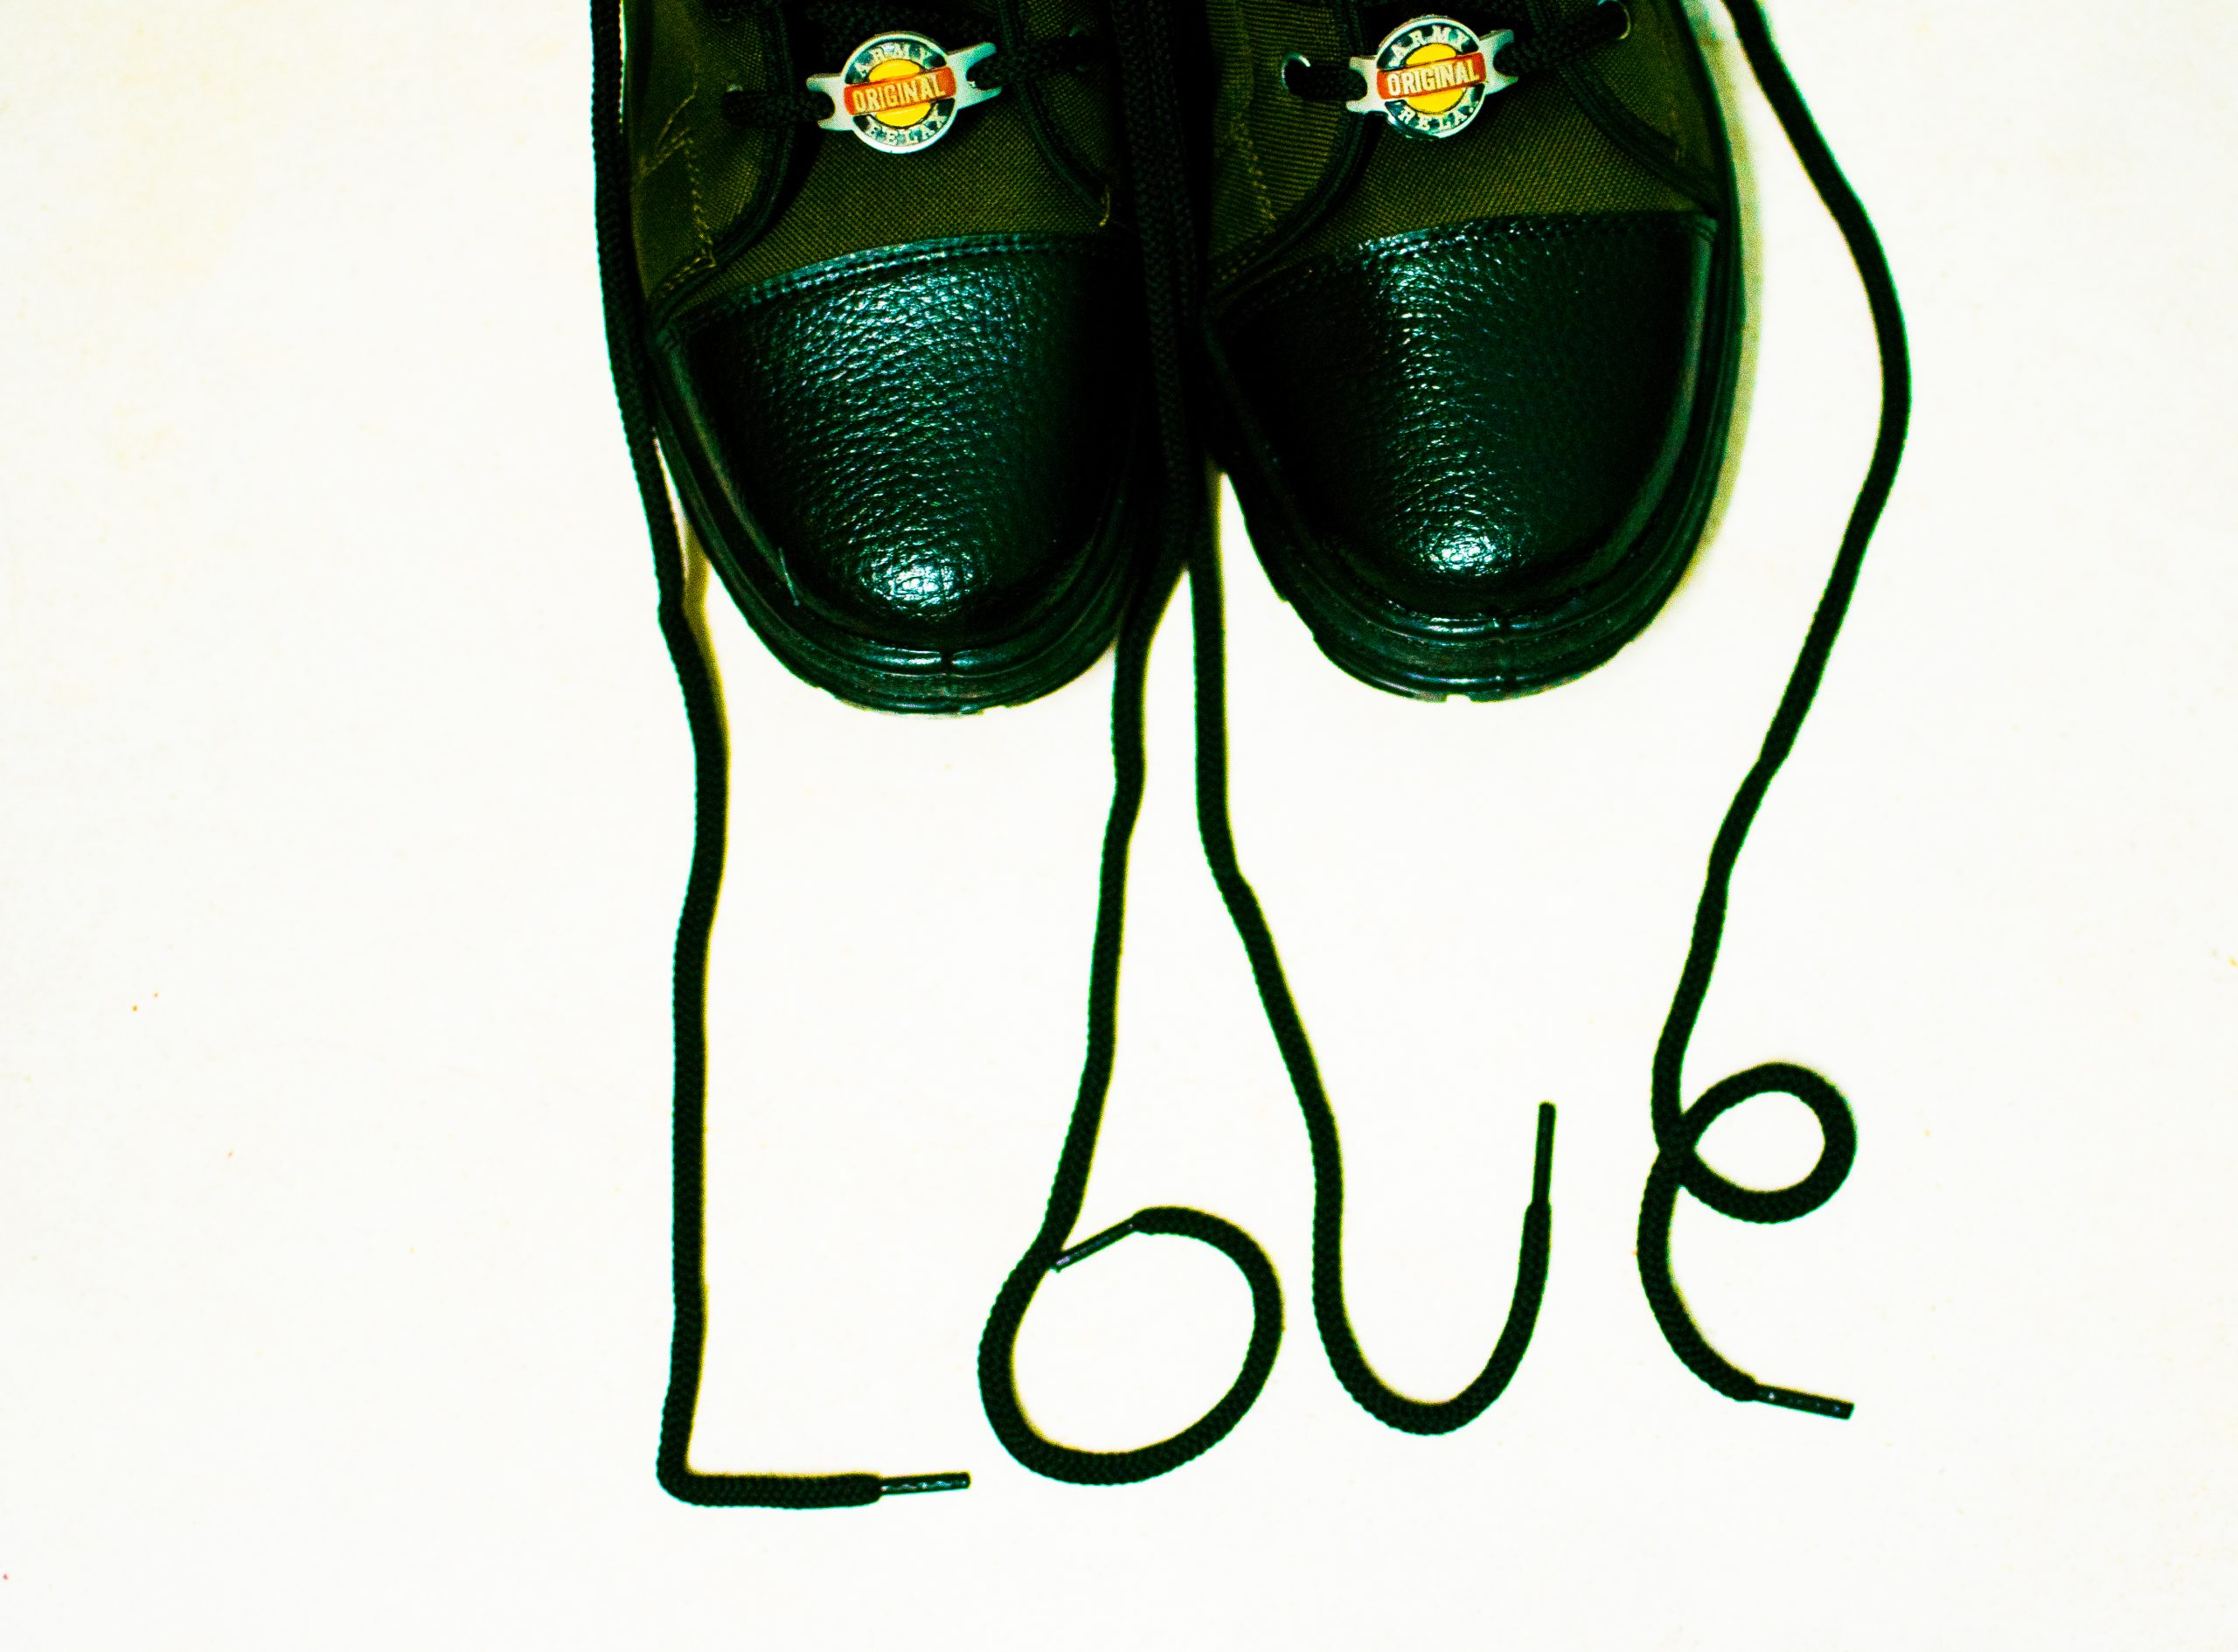 Army Shoes and laces